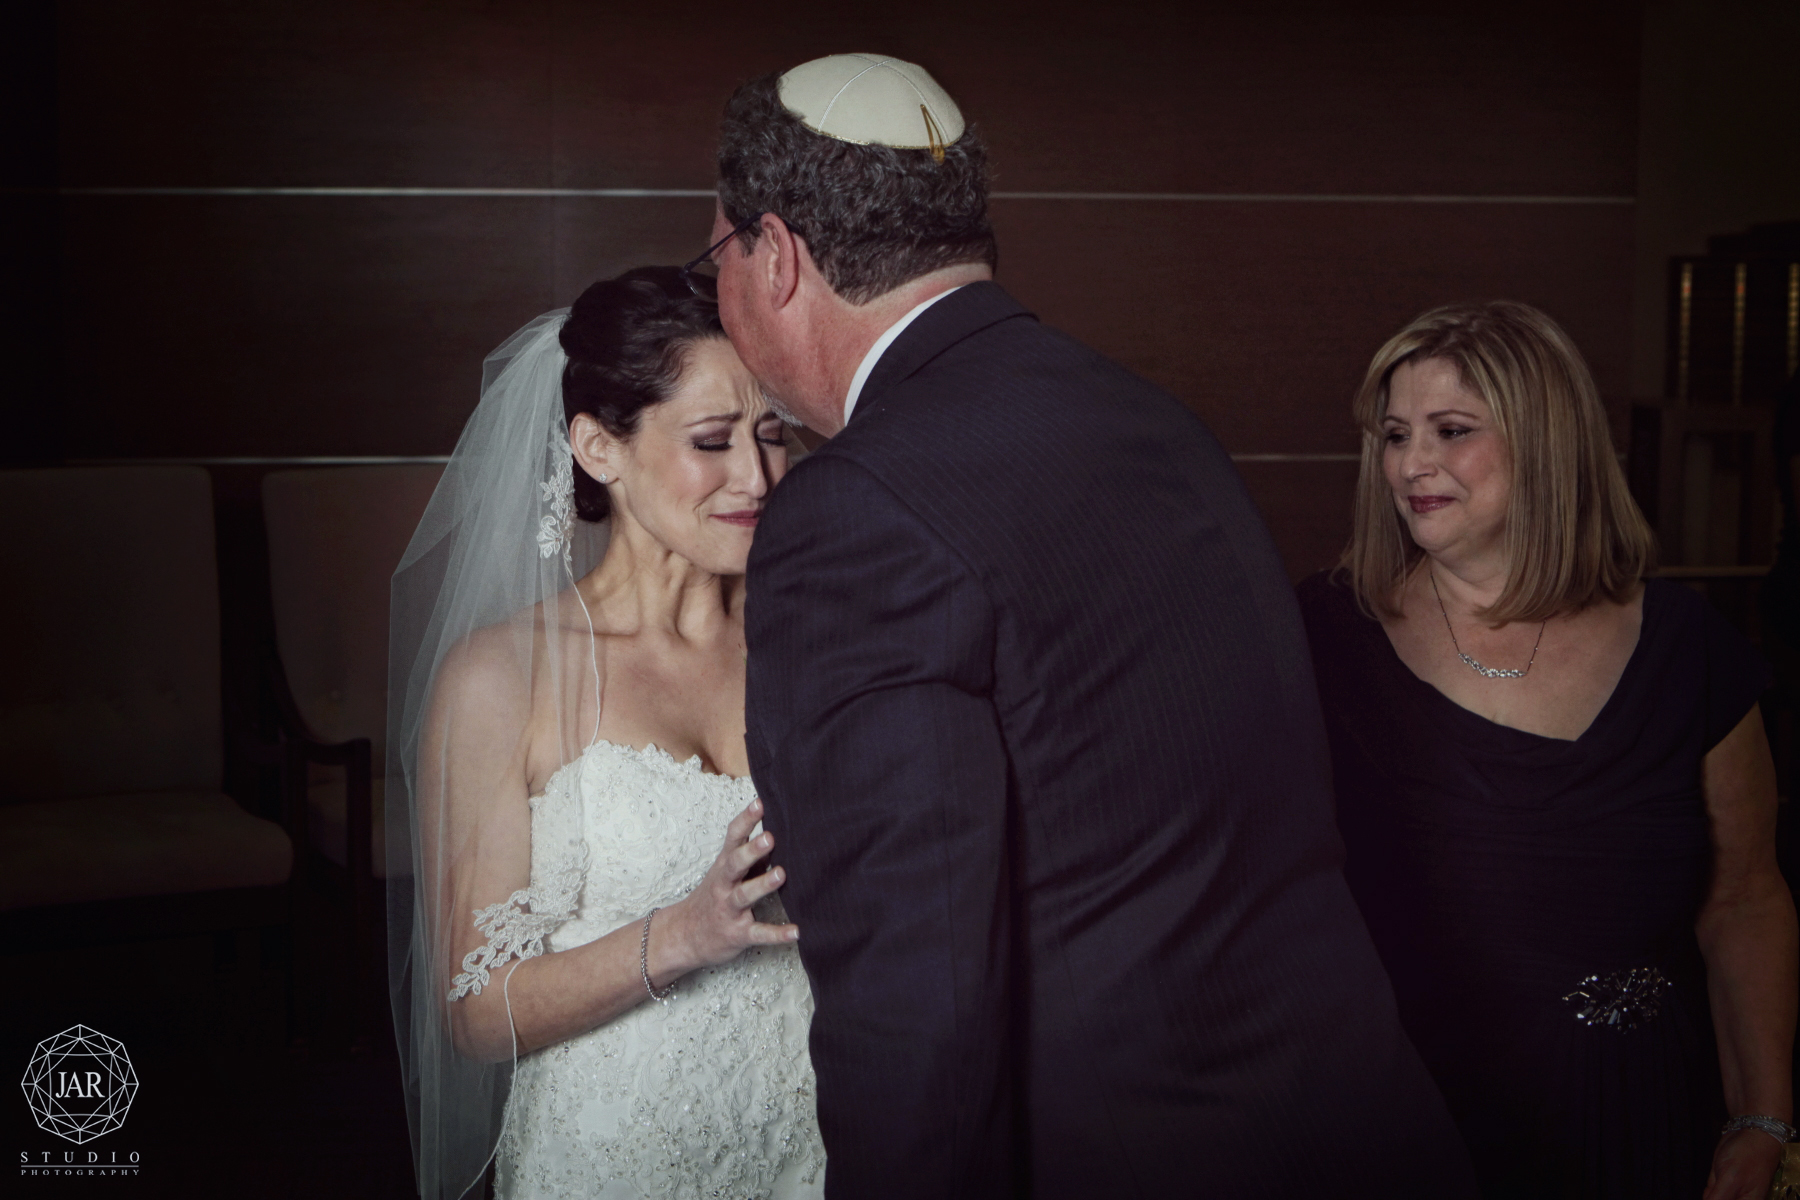 16-bride-dad-orlando-jewish-wedding-kippah-jarstudio-photography.JPG